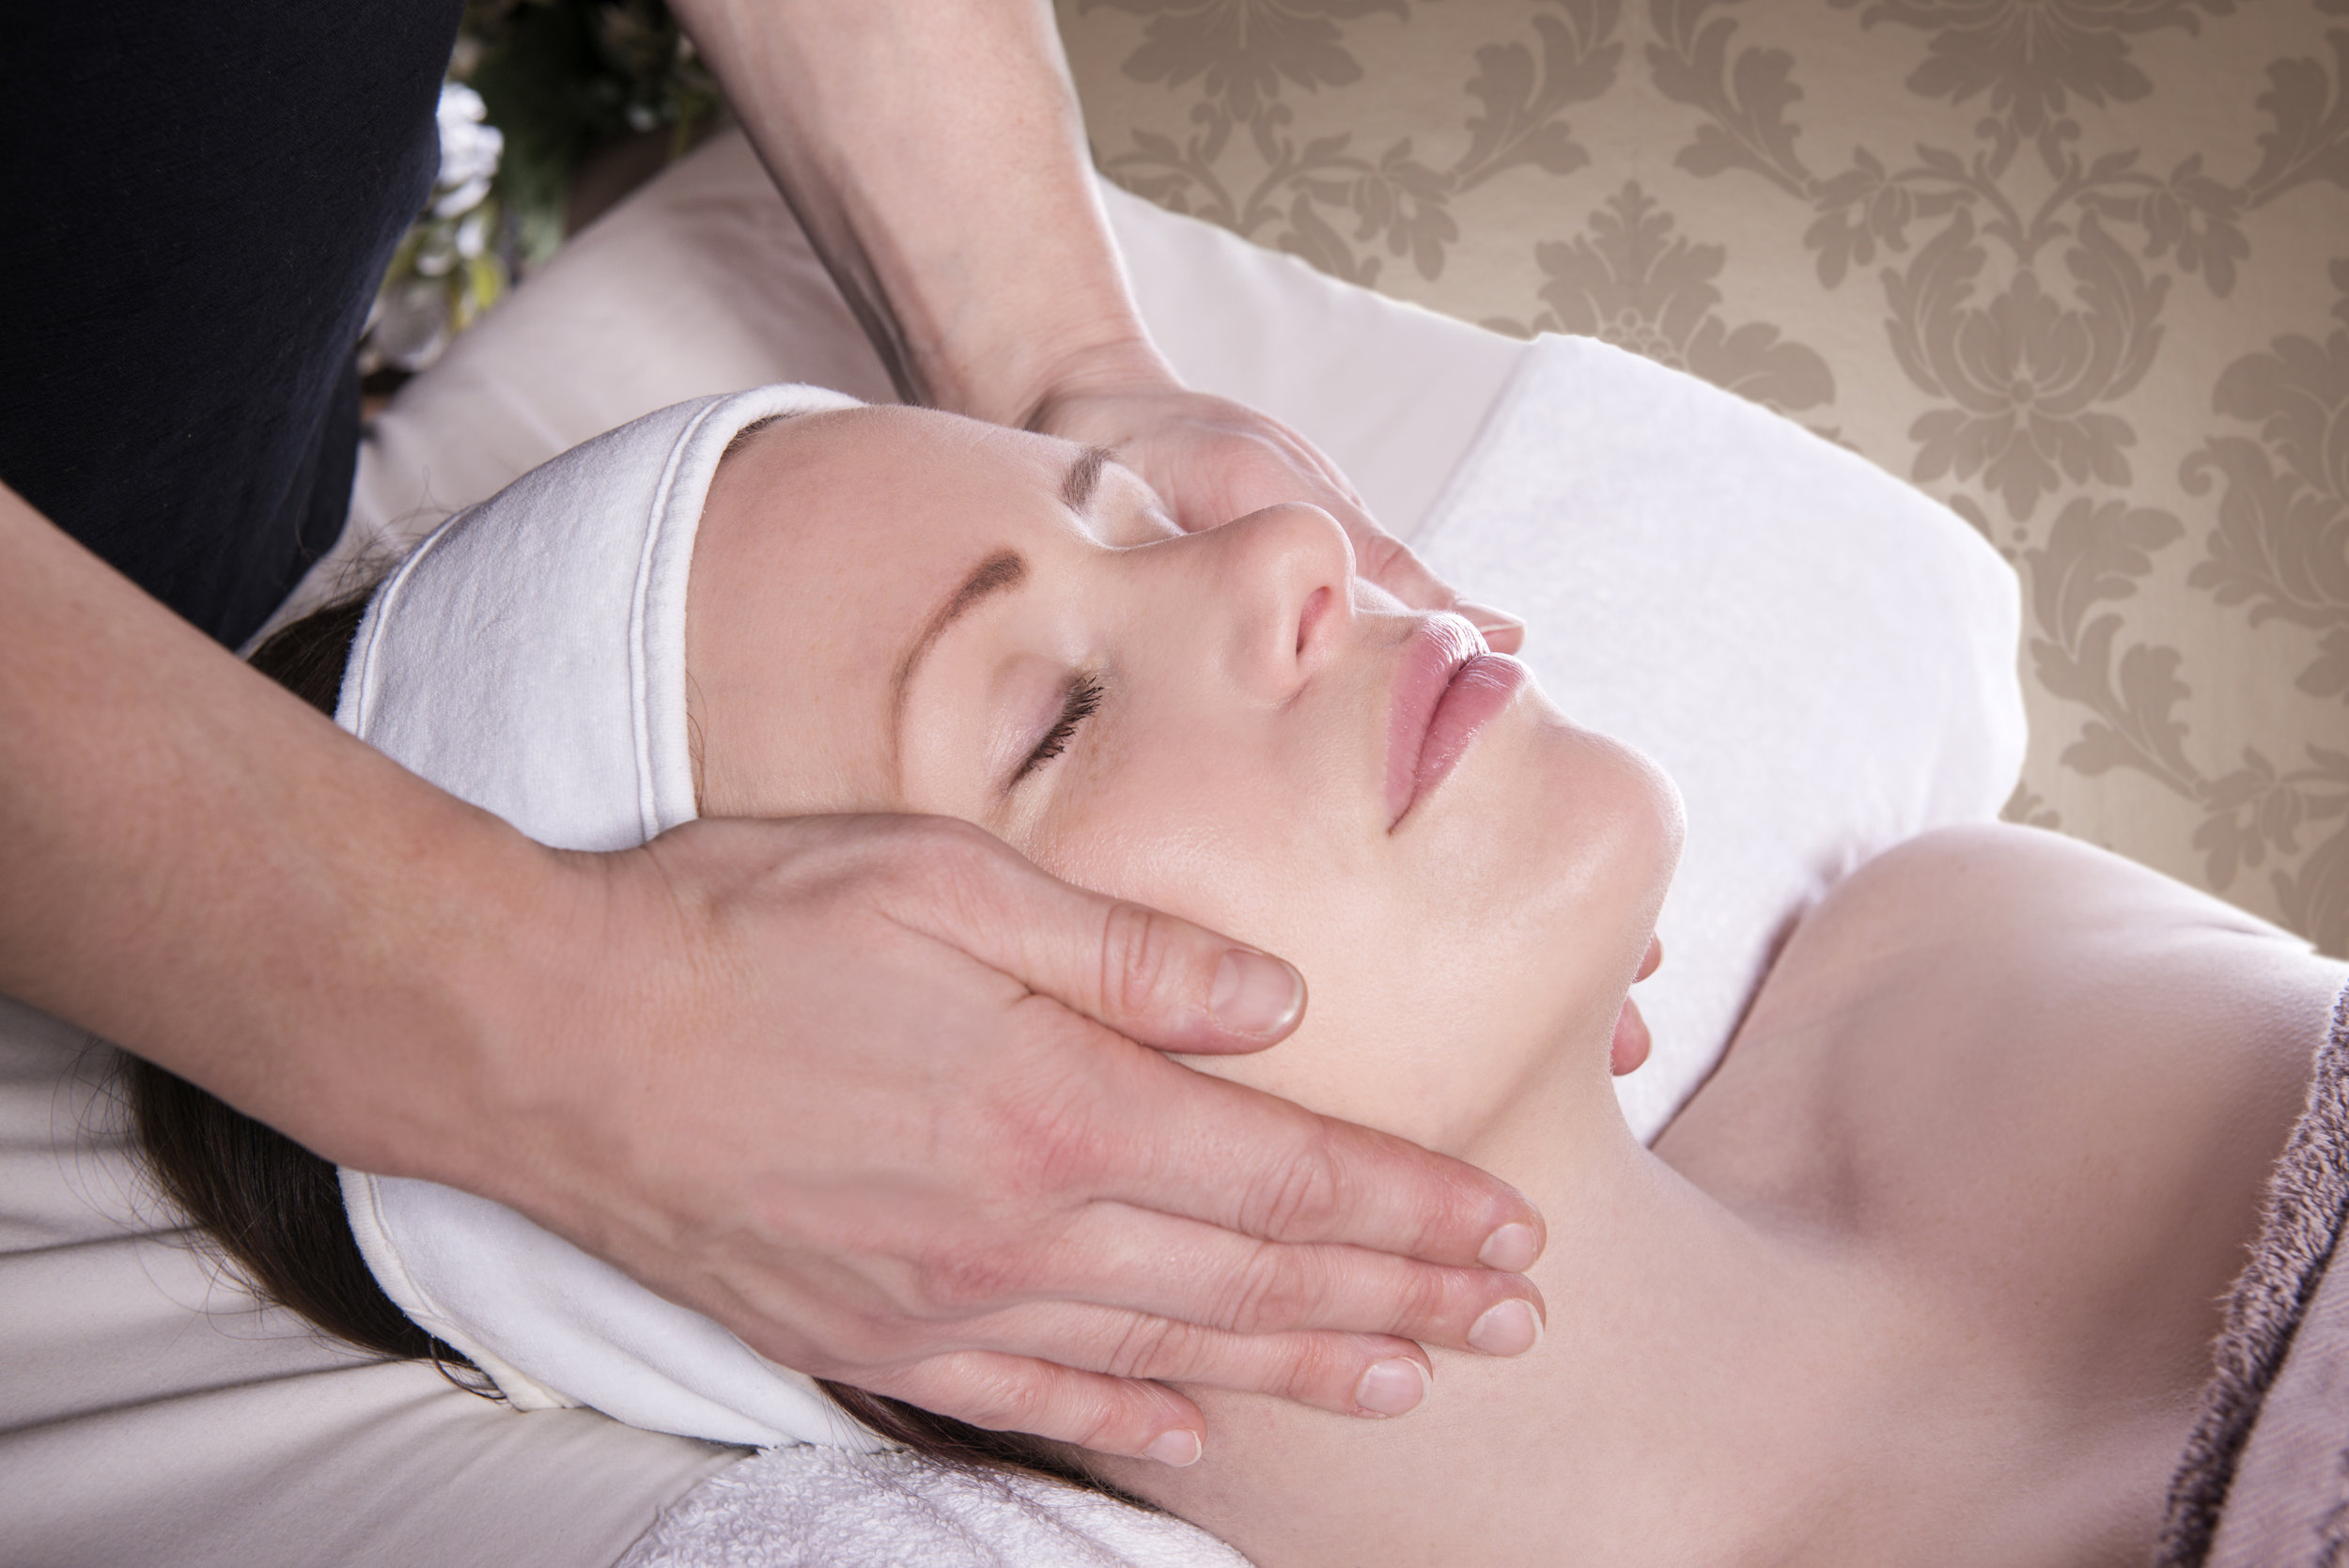 Facial Therapy - Is your skin feeling bloated and out of sorts? Are you noticing those tell-tale facial lines and furrows? Do you feel out of balance? Do you wish for your face to be revitalised and restored?